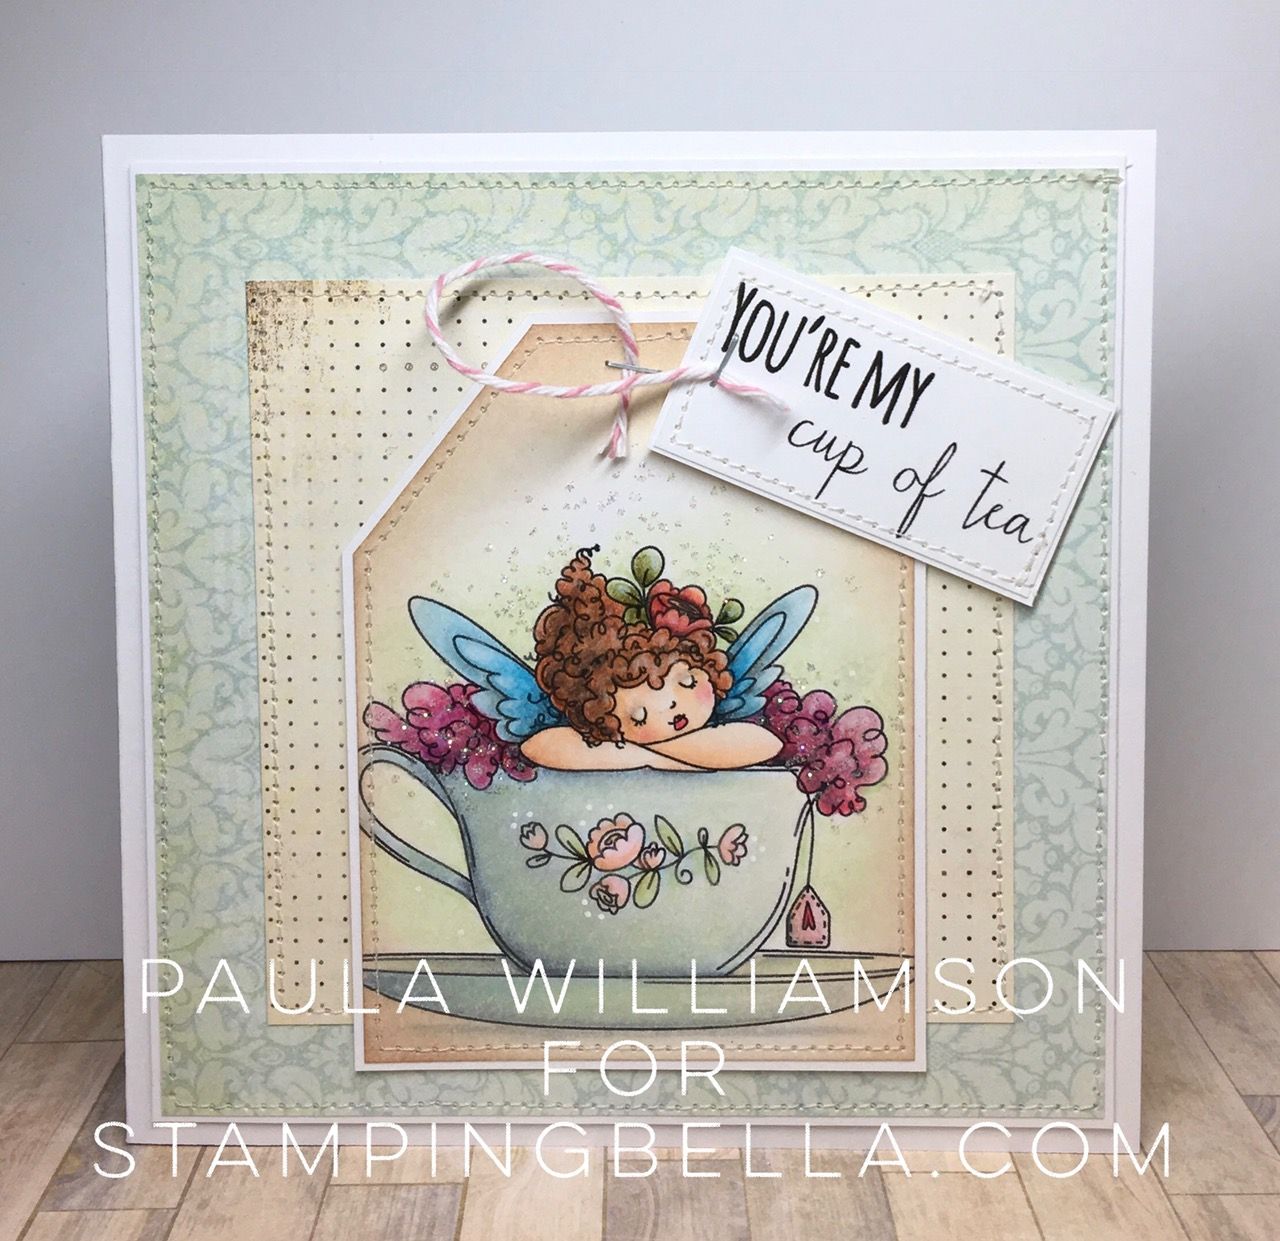 Stamping Bella JANUARY 2017 rubber stamp release-Edna's CUP OF TEA card by Paula Williamson